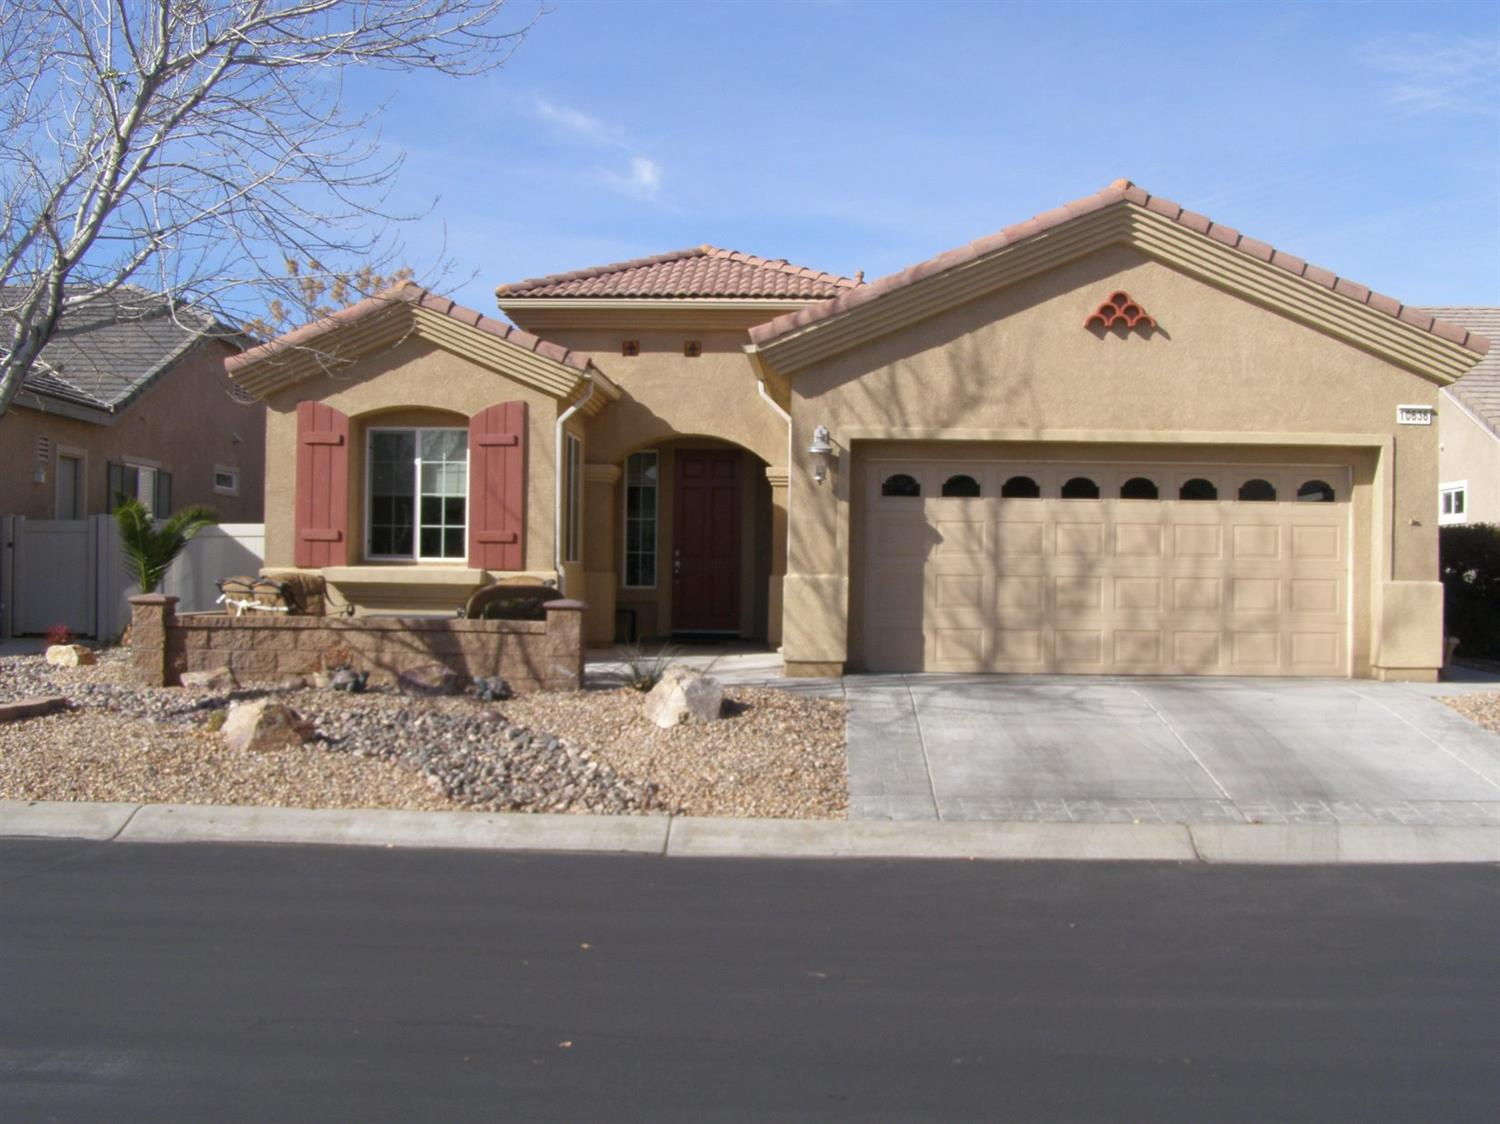 All homes for sale 55places 10636 archerwill road apple valley ca 92308 malvernweather Choice Image